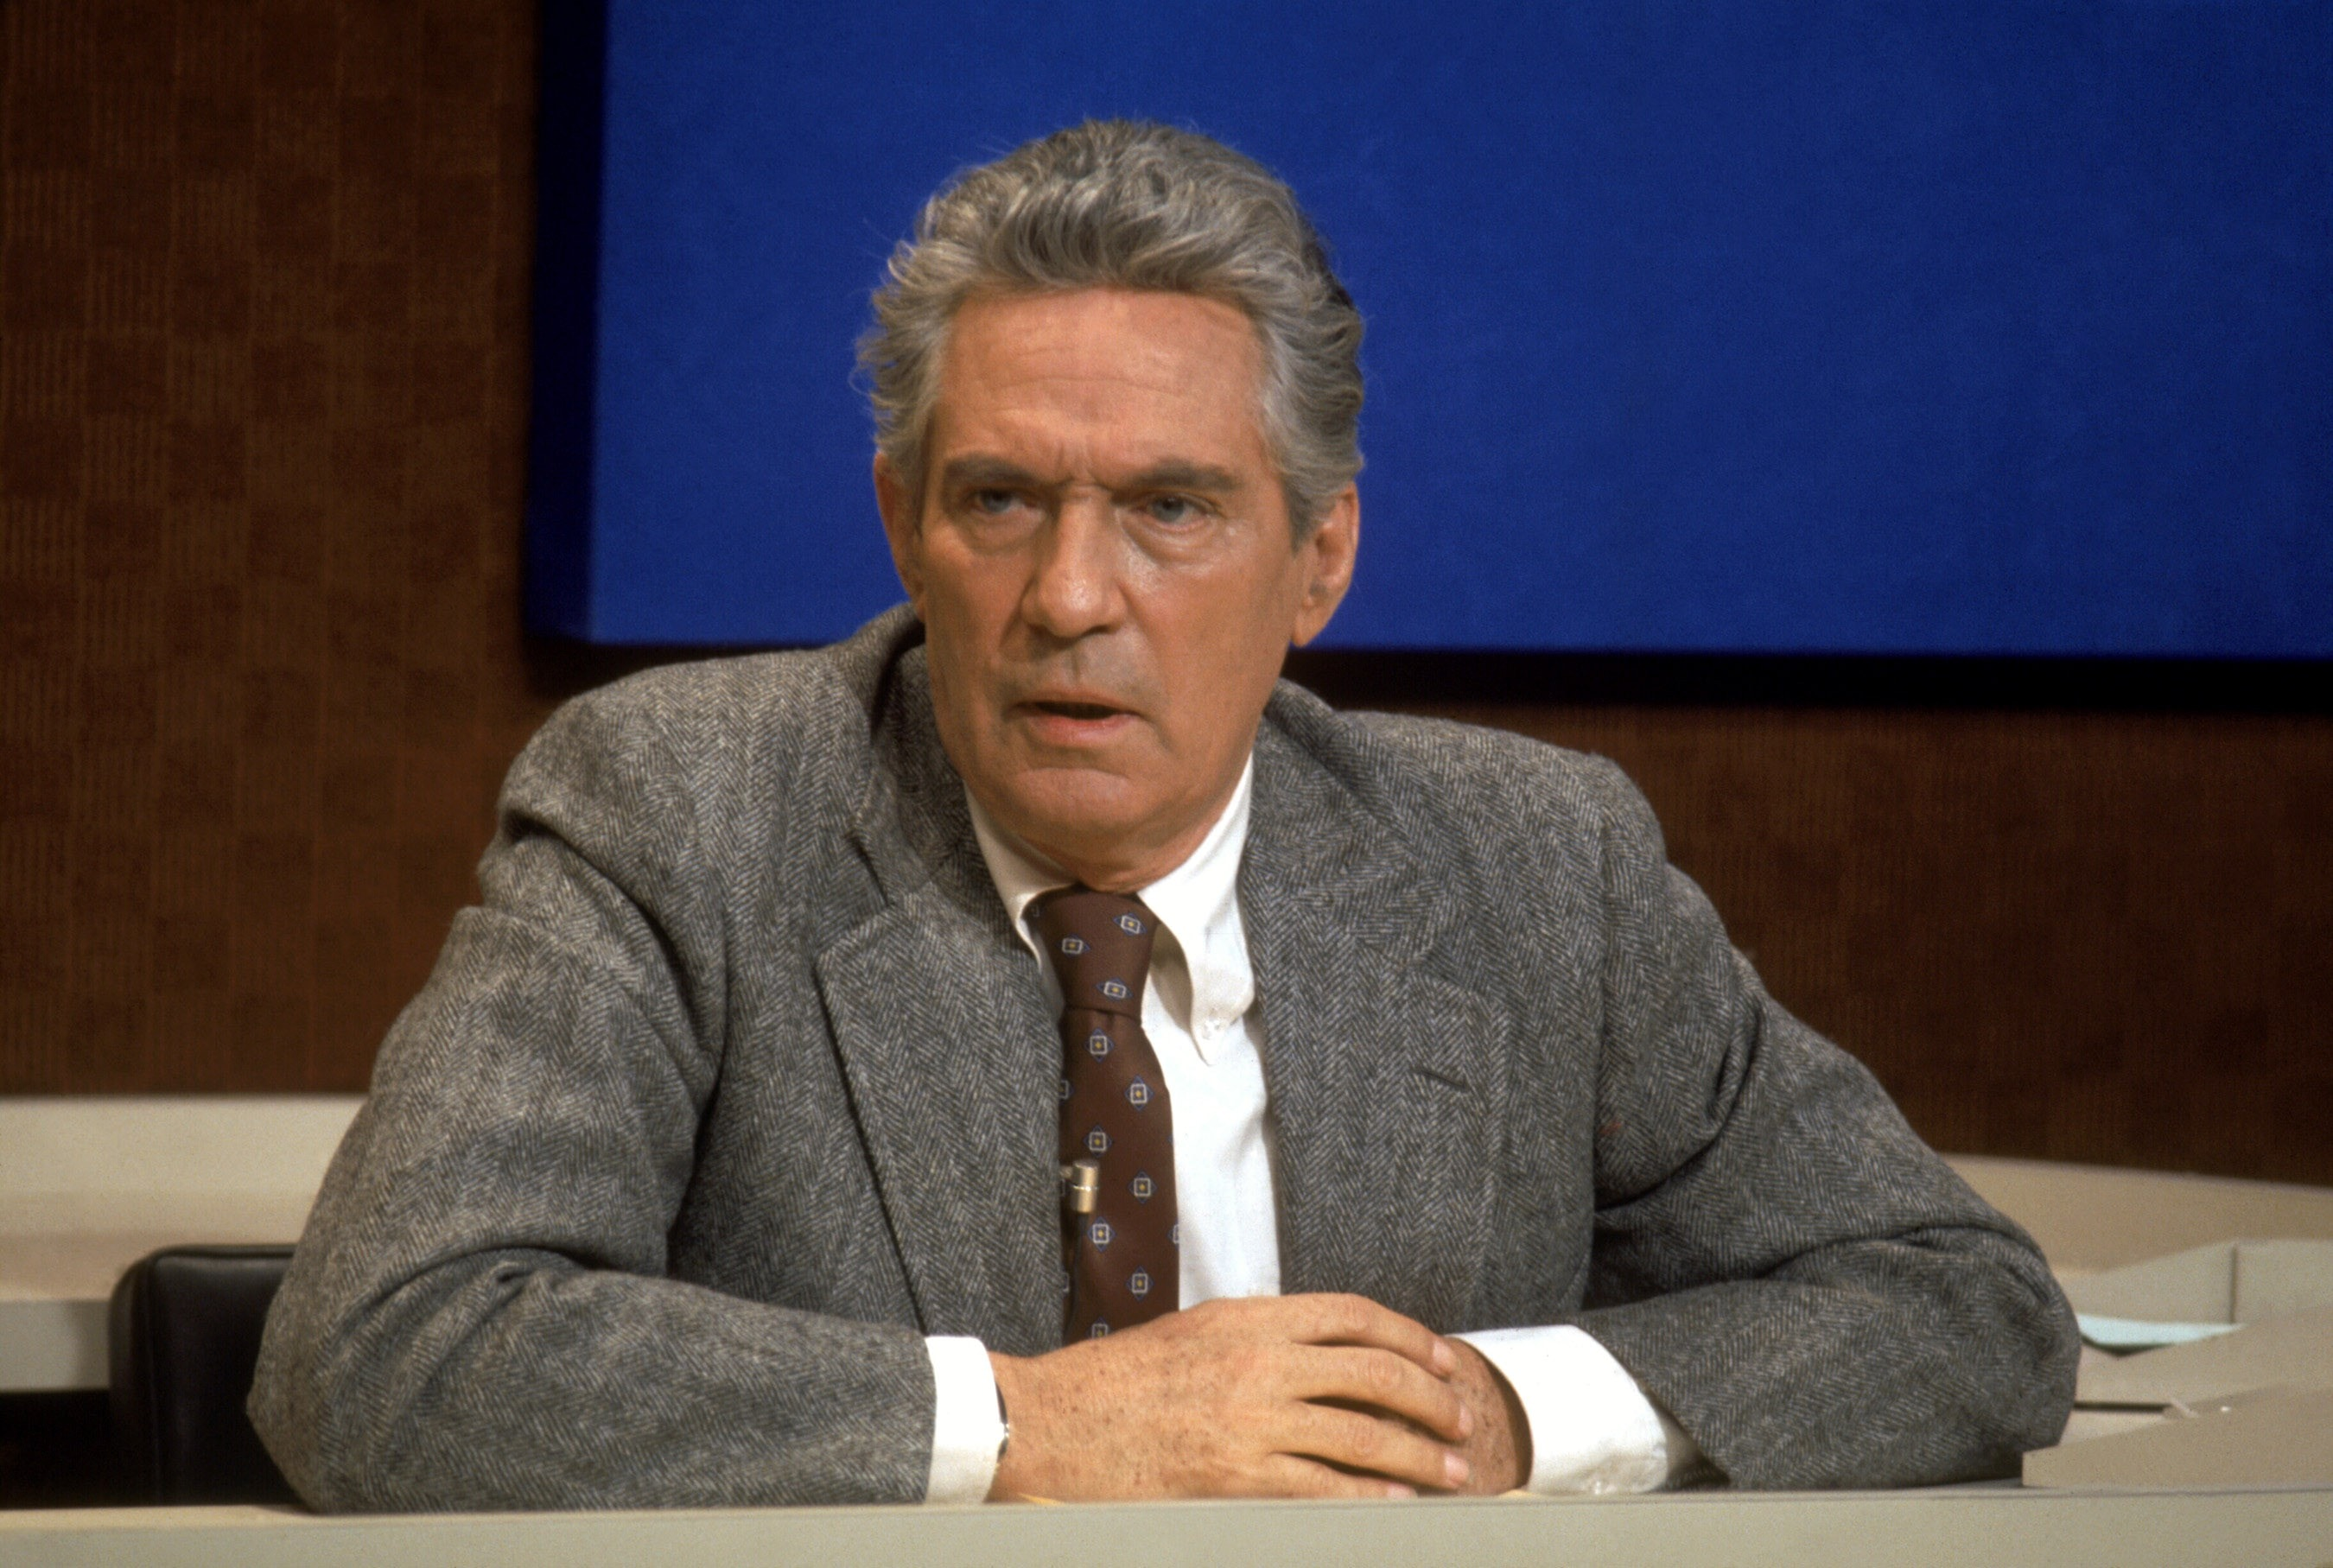 Peter Finch Background